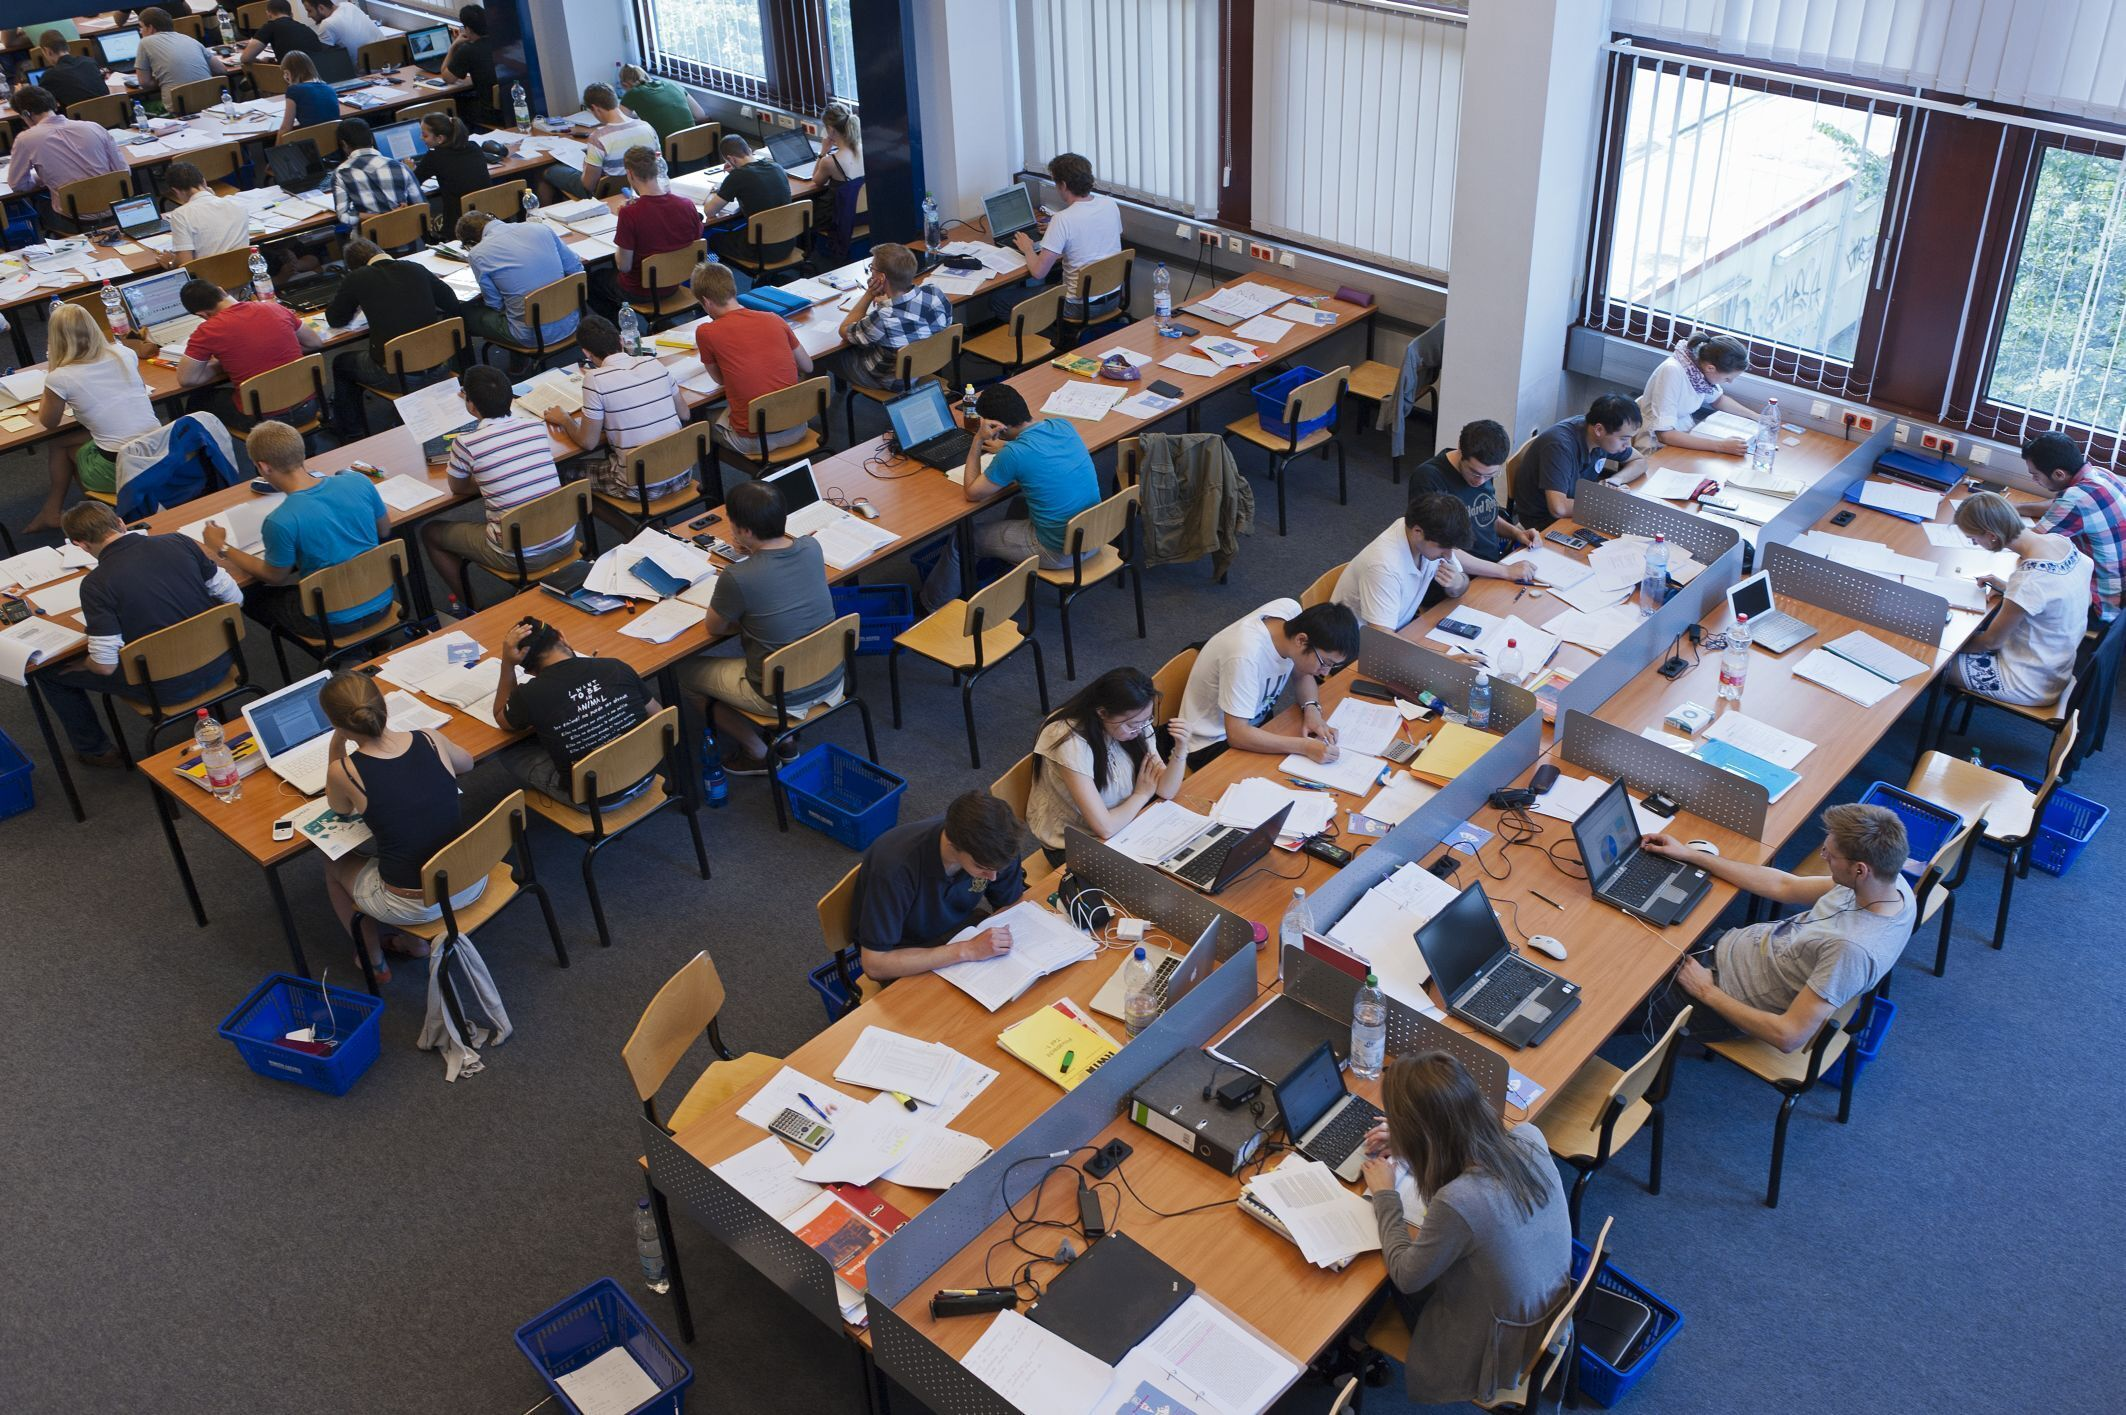 Students in the University Library